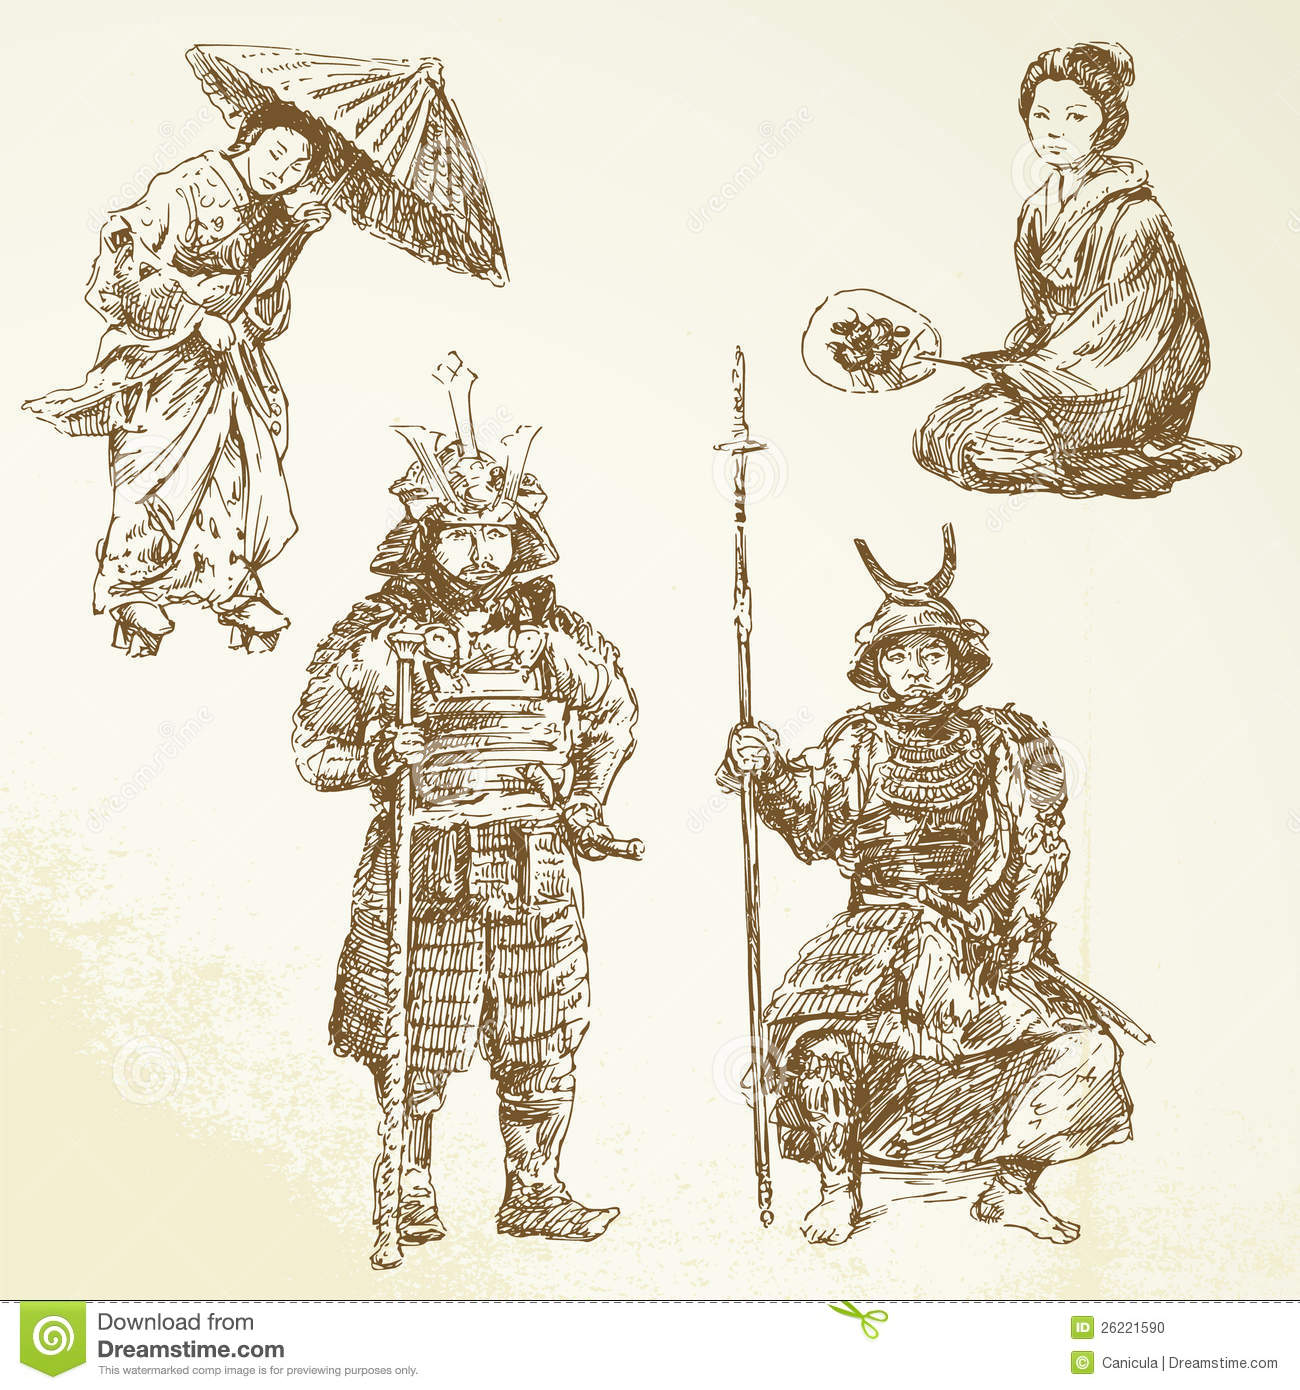 Samurai - warrior in Japanese tradition.